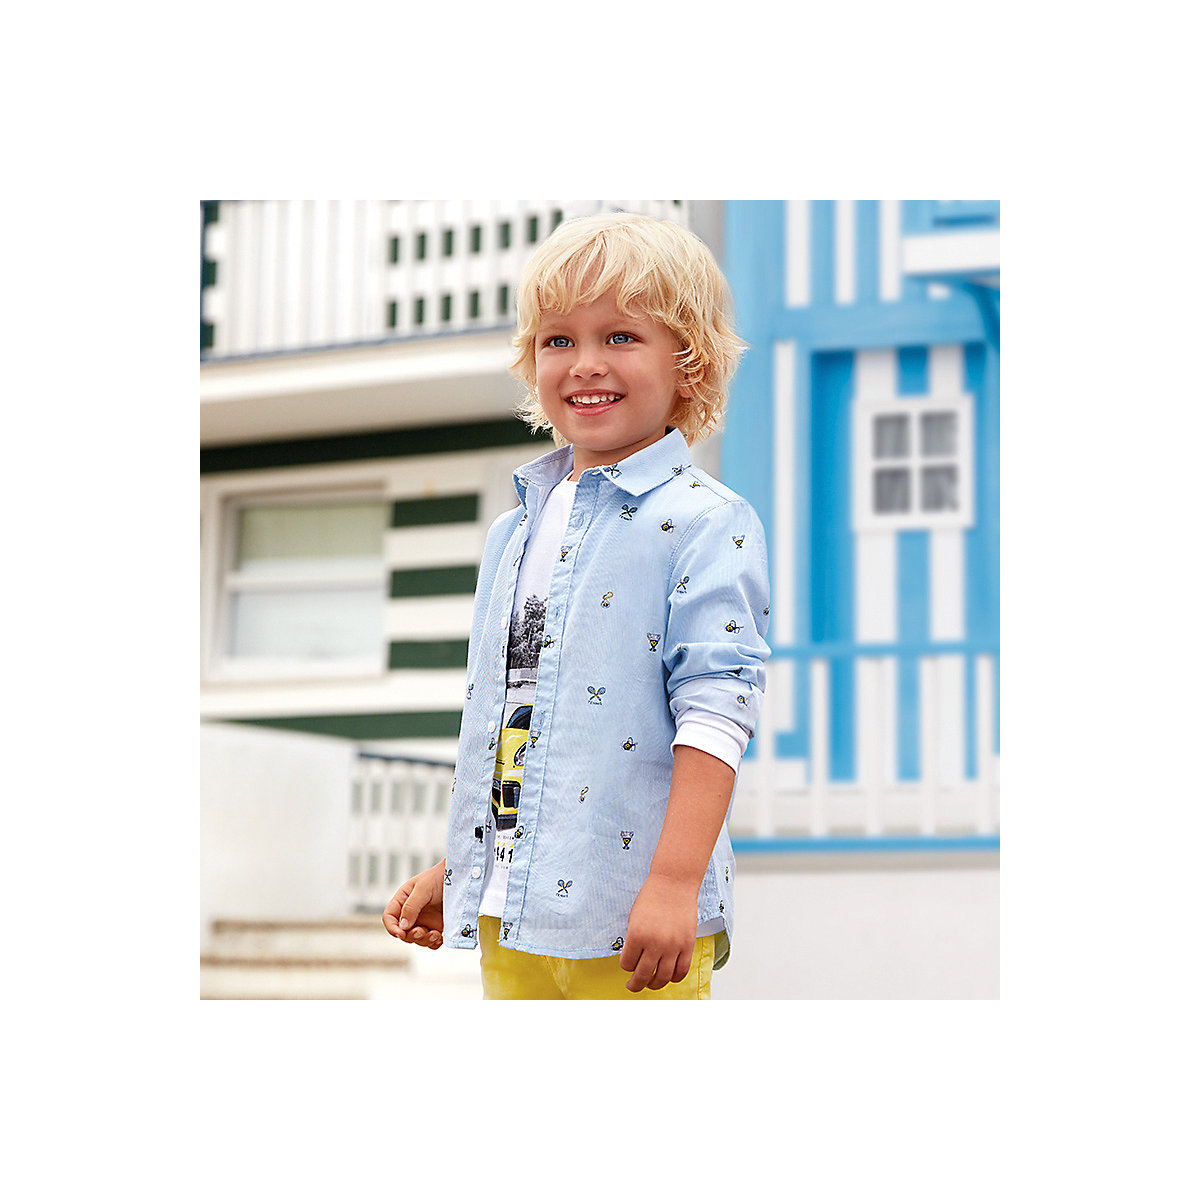 Blouses & Shirts MAYORAL 10689113 Children s Clothing shirt with long sleeve for a boy natural materials stylish long sleeve scoop neck floral print women s blouse